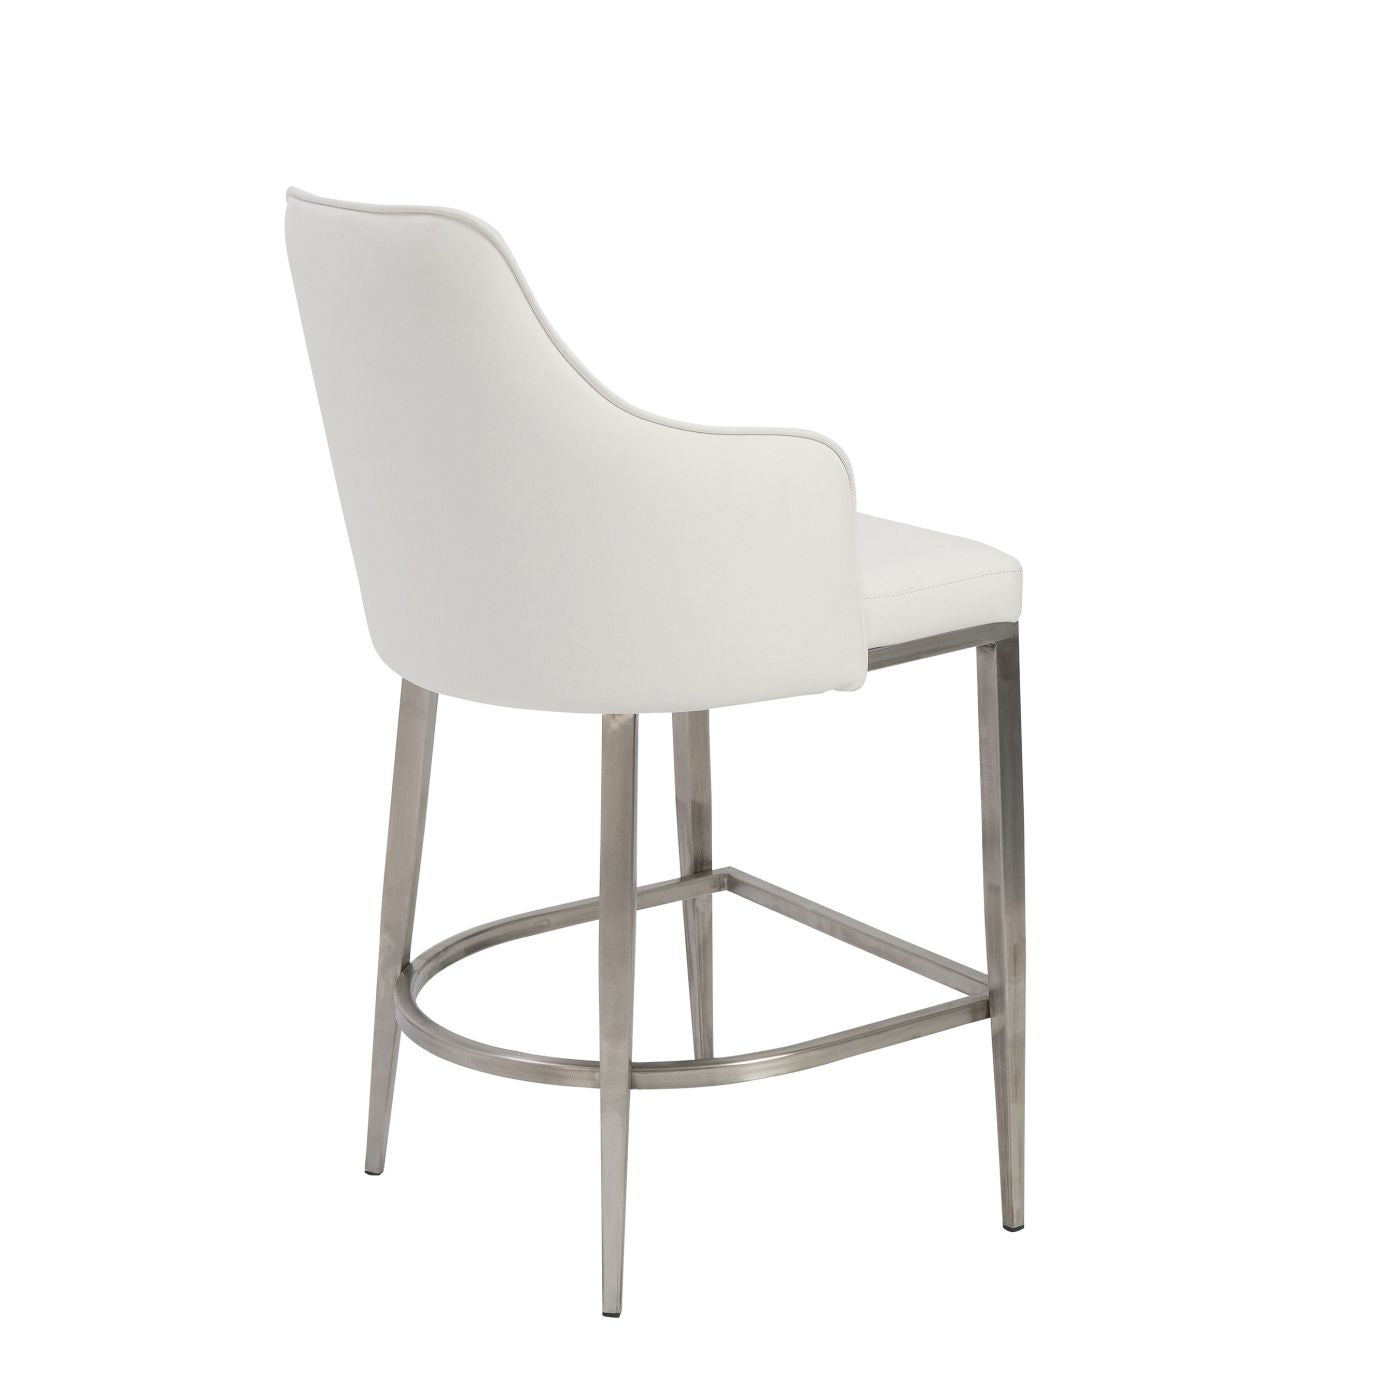 Euro Style Aaron Bar Stool In White With Brushed Stainless